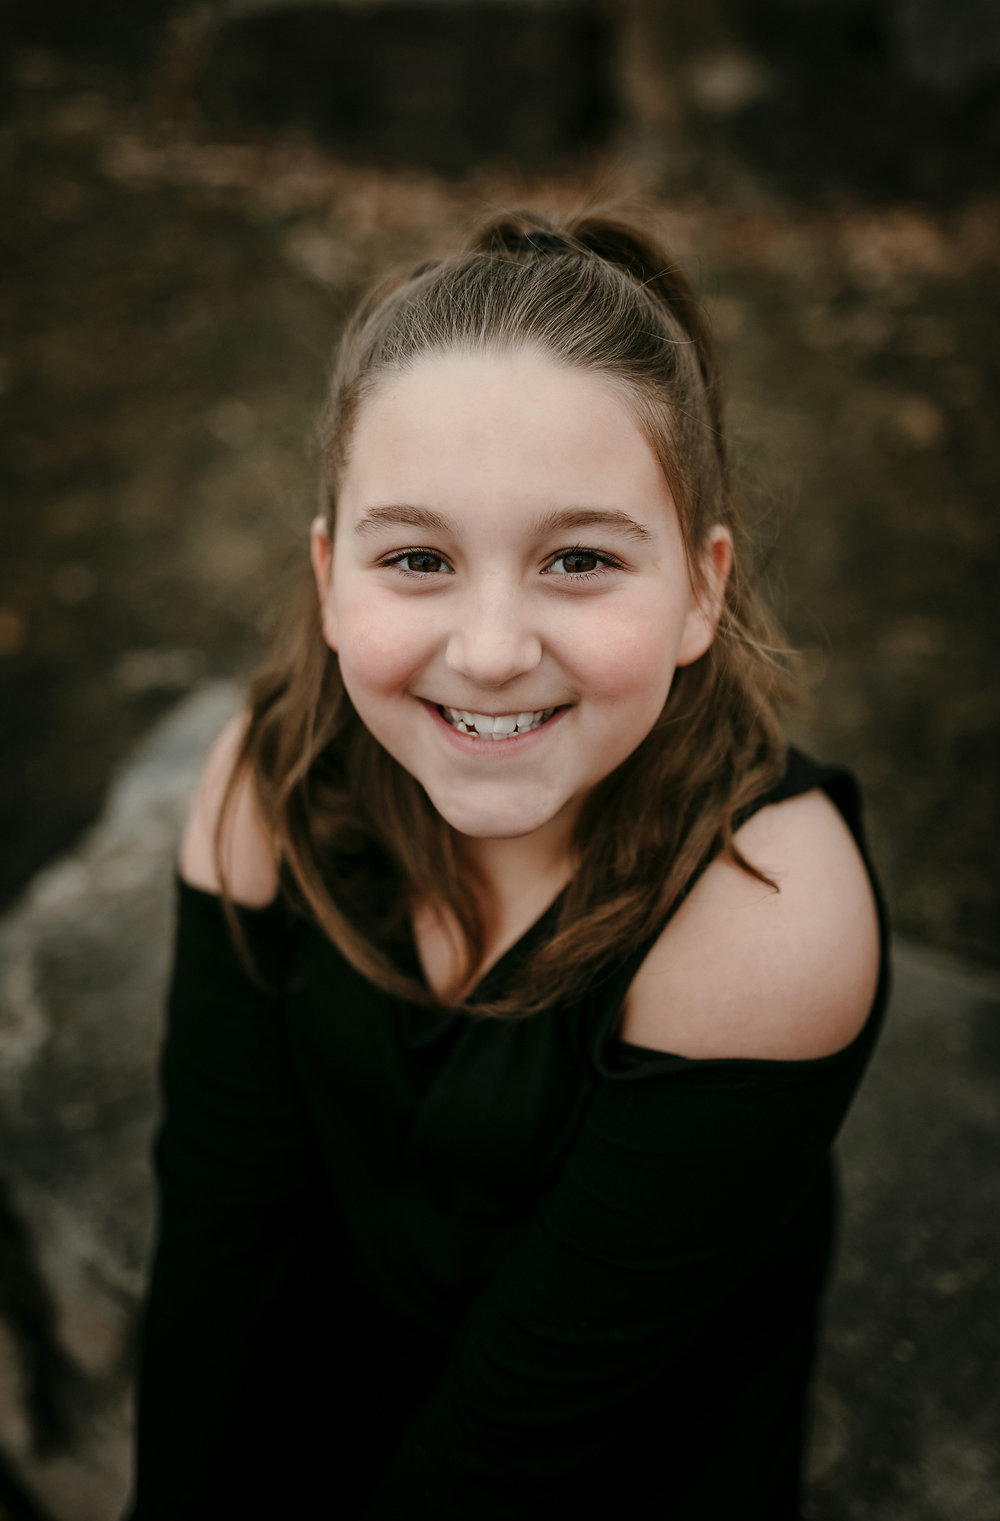 Homeschool Portraits, Minneapolis St. Paul Minnesota